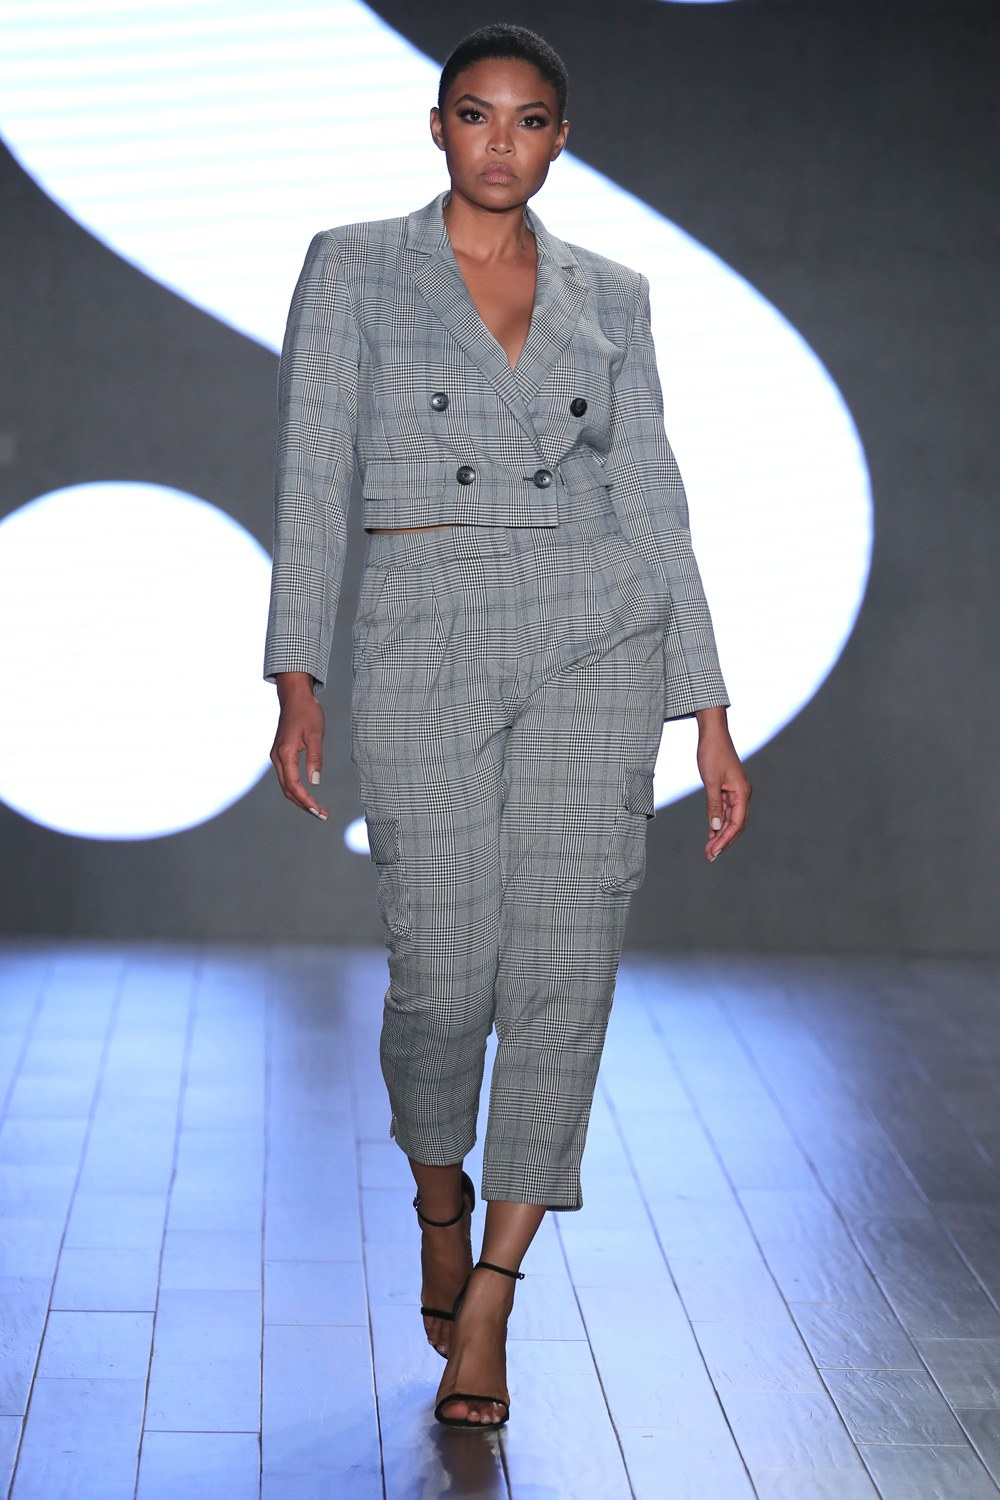 a model wearing a checked suit on the runway